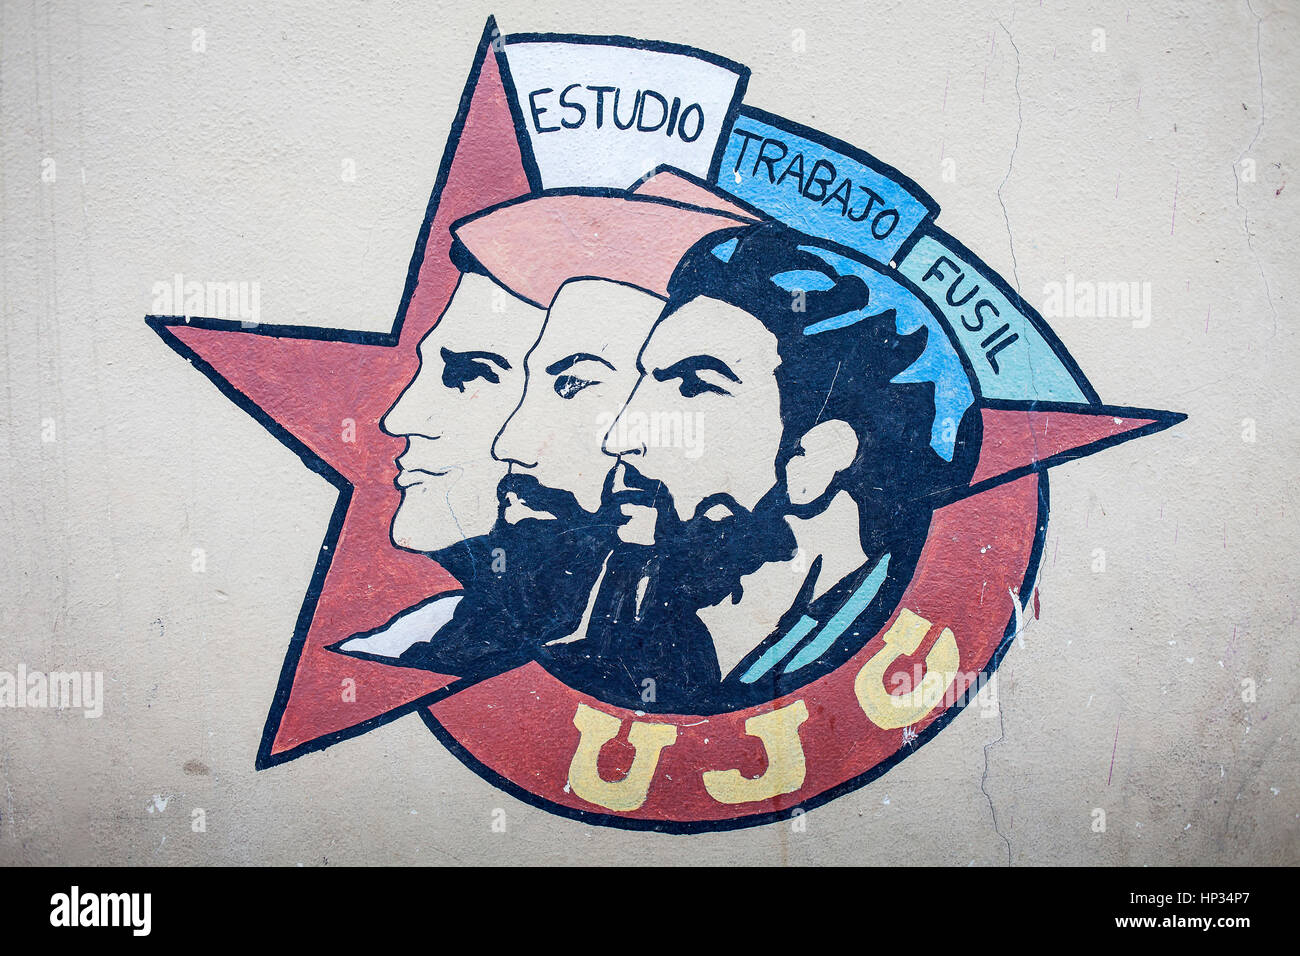 Political propaganda. Emblem of UJC, Union of Young Communists, faces of Mella, Cienfuegos y Che, painted on a street - Stock Image